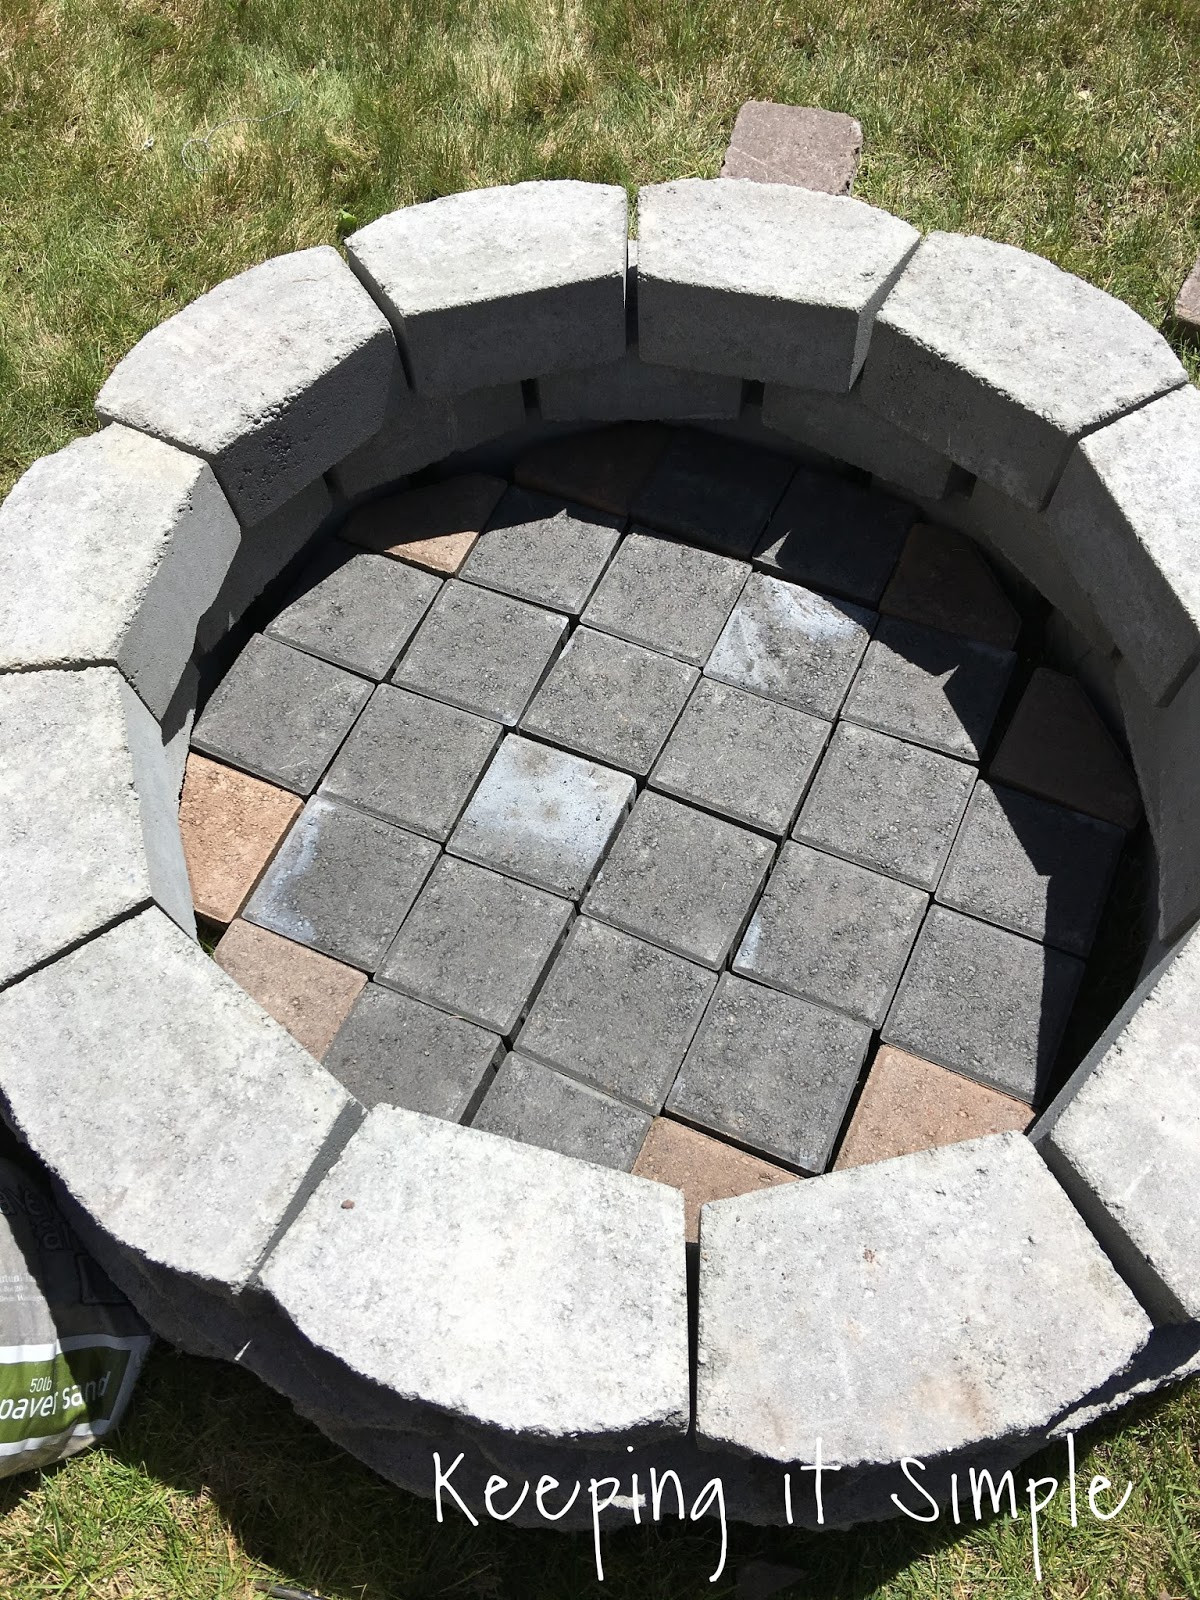 Best ideas about Fire Pits DIY . Save or Pin How to Build a DIY Fire Pit for ly $60 • Keeping it Now.